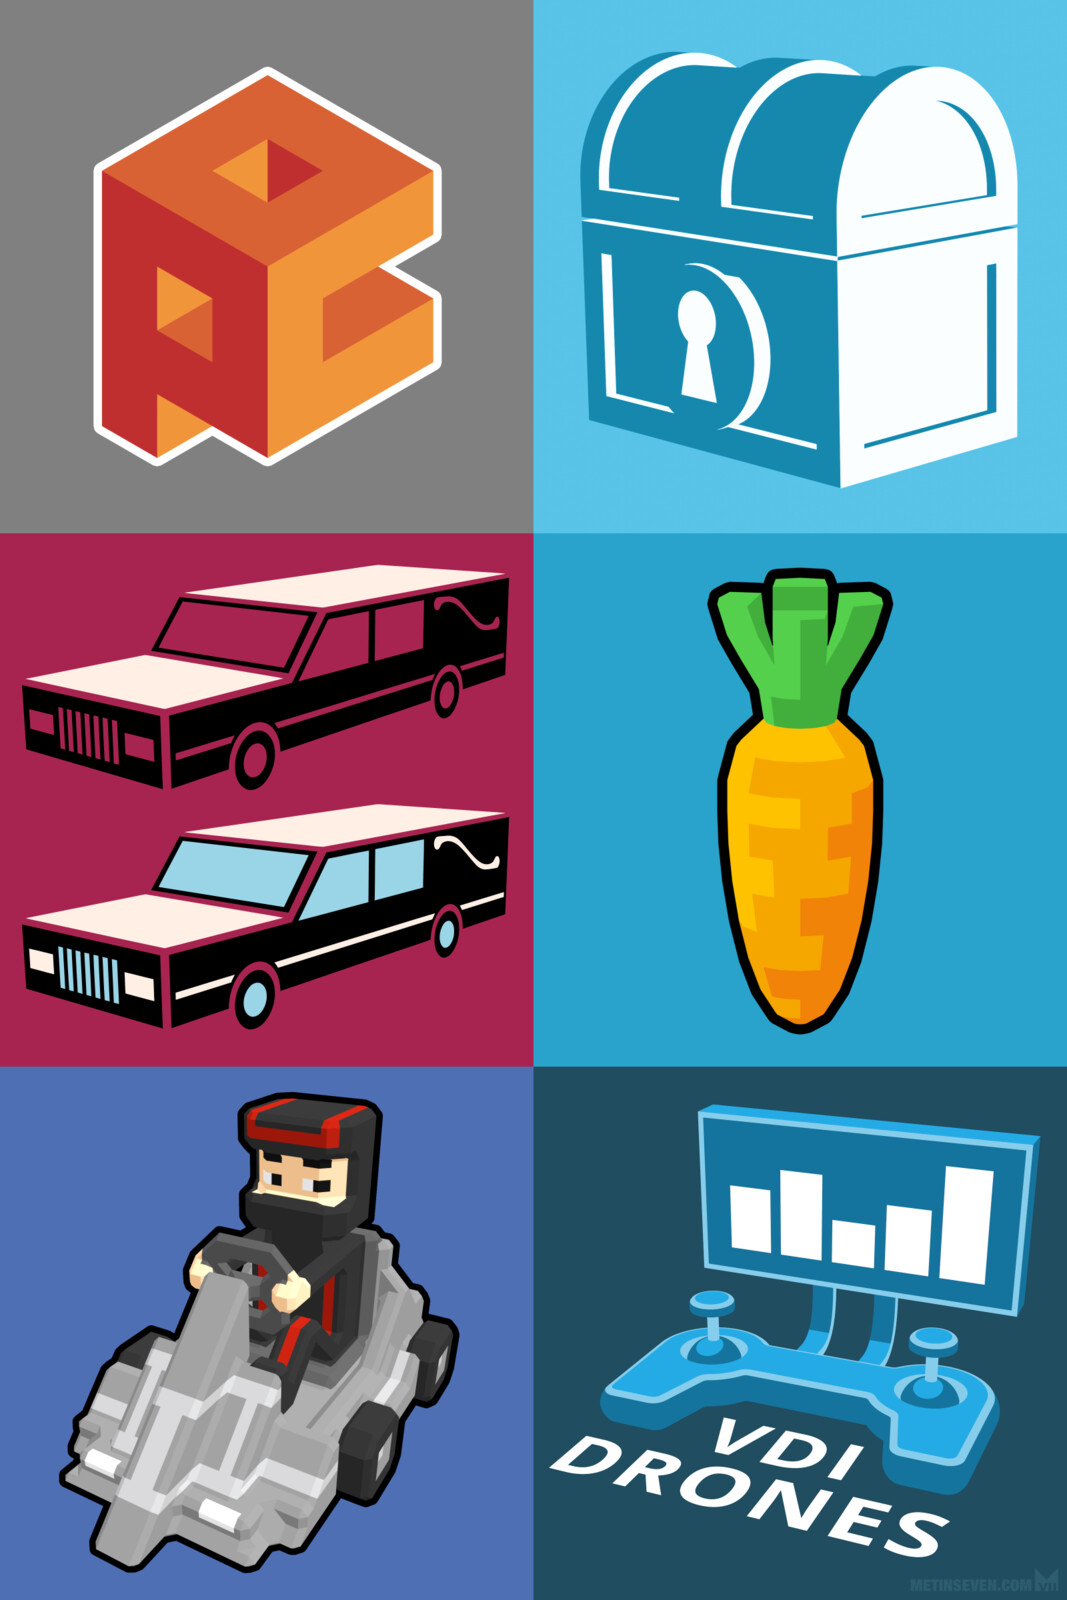 Various icons and logo designs, rendered in graphic / stylized 3D